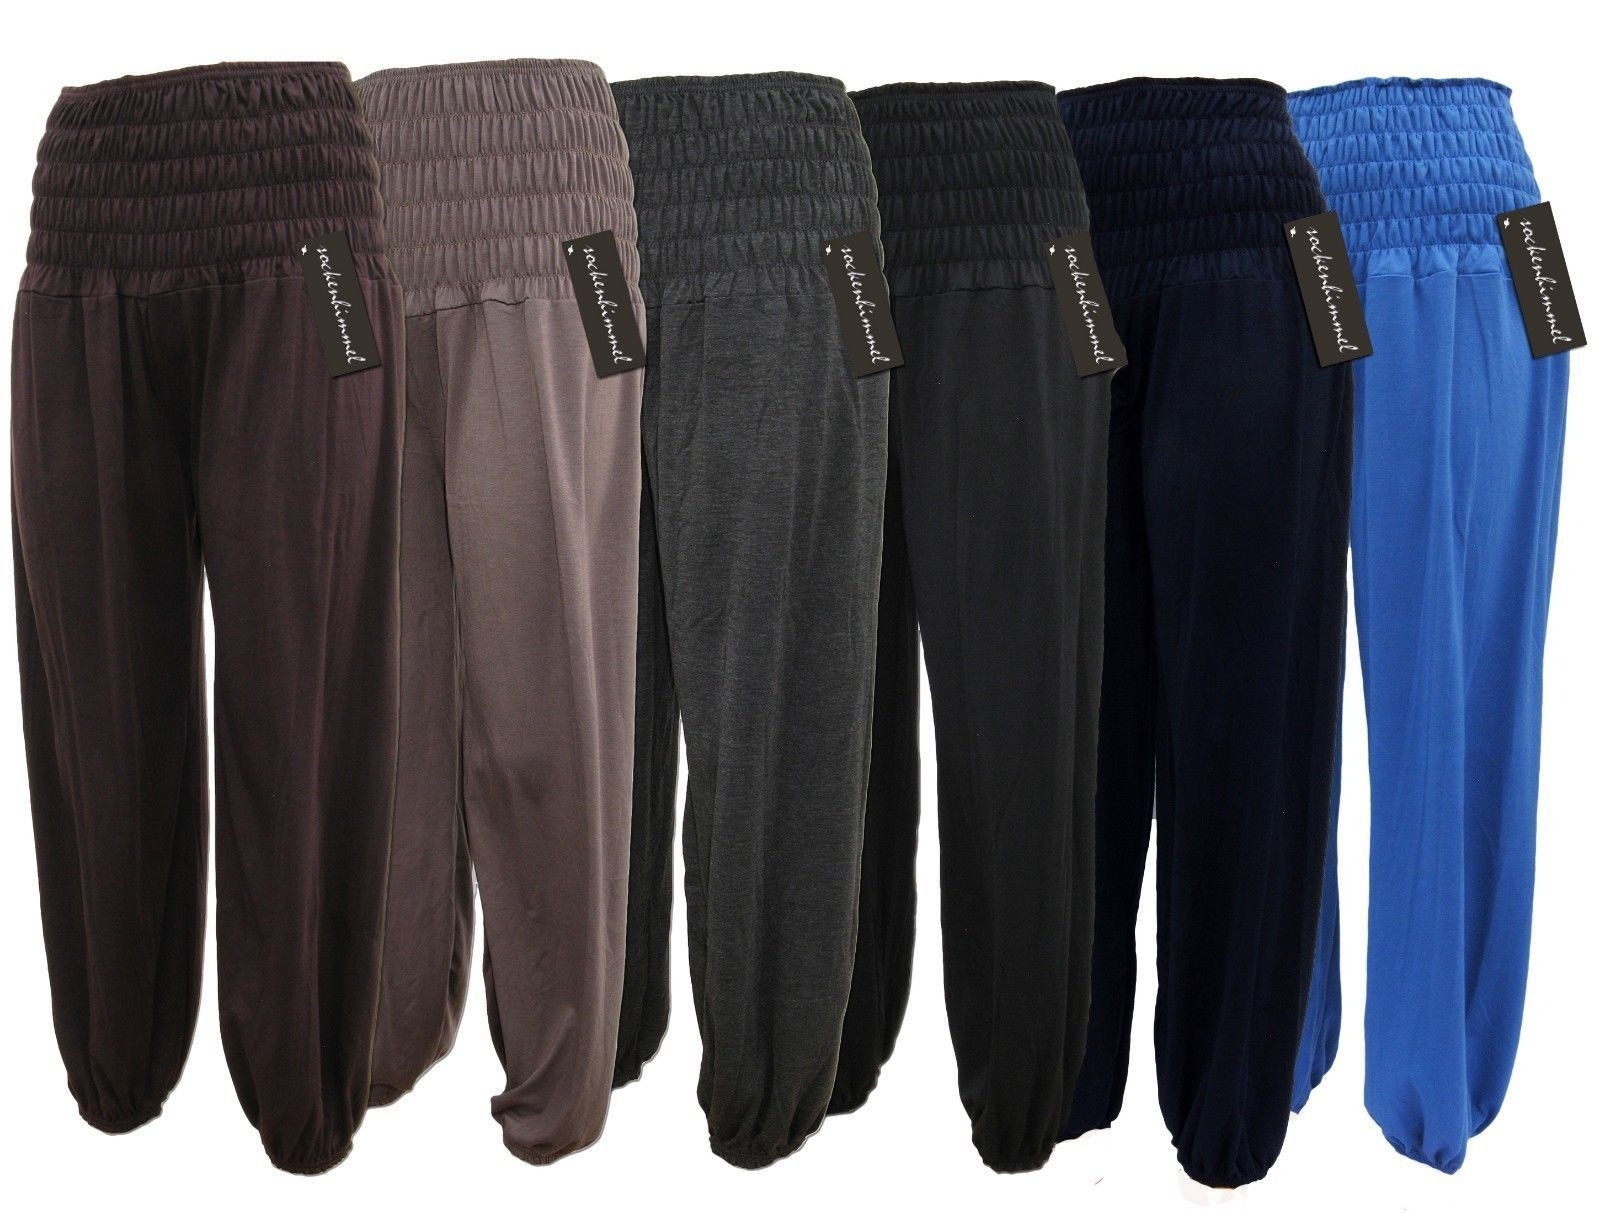 2Comfy Sports Or Leisure Pants - Dance Or Fitness Pants Light Weight 8-14, 16-20